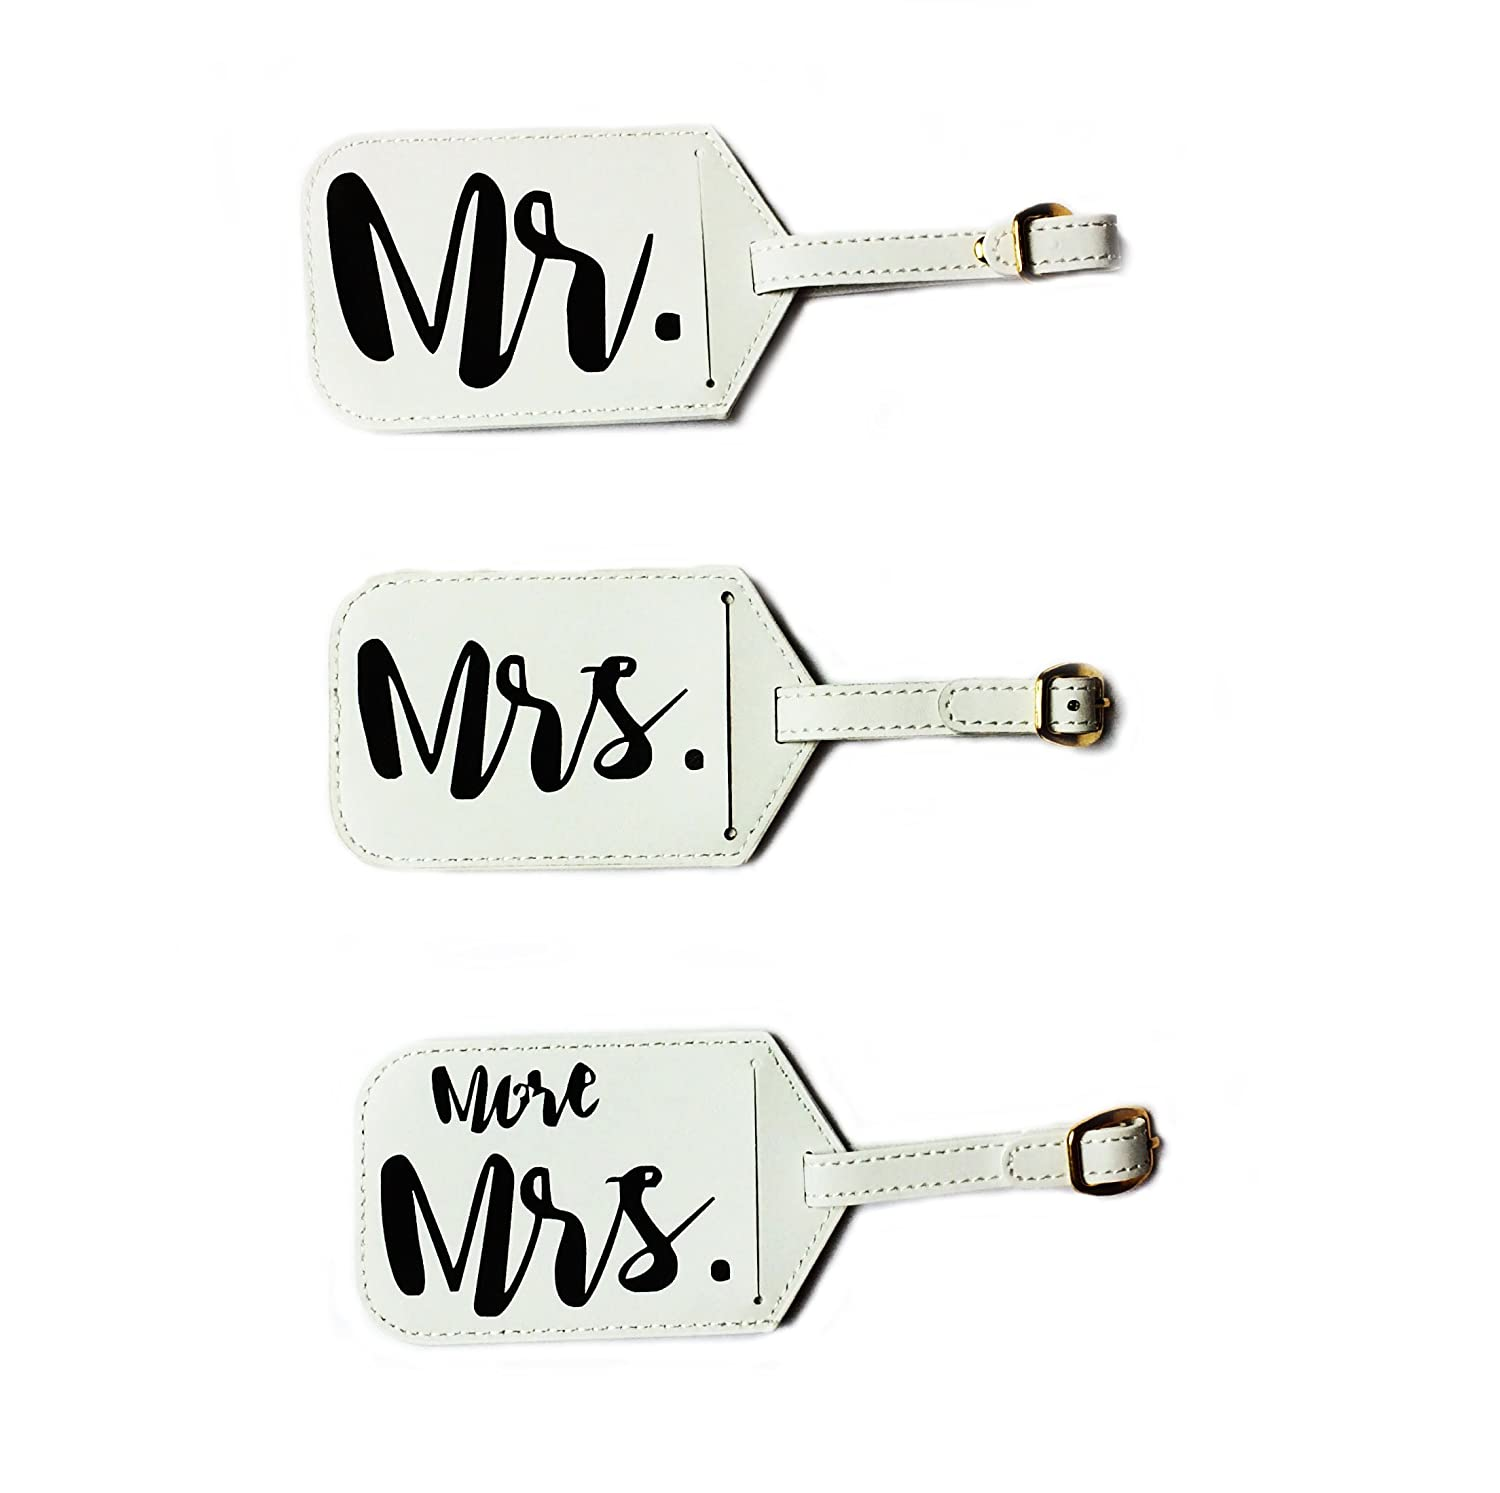 Mr. & Mrs. Luggage Tags (3-pack) 10426933